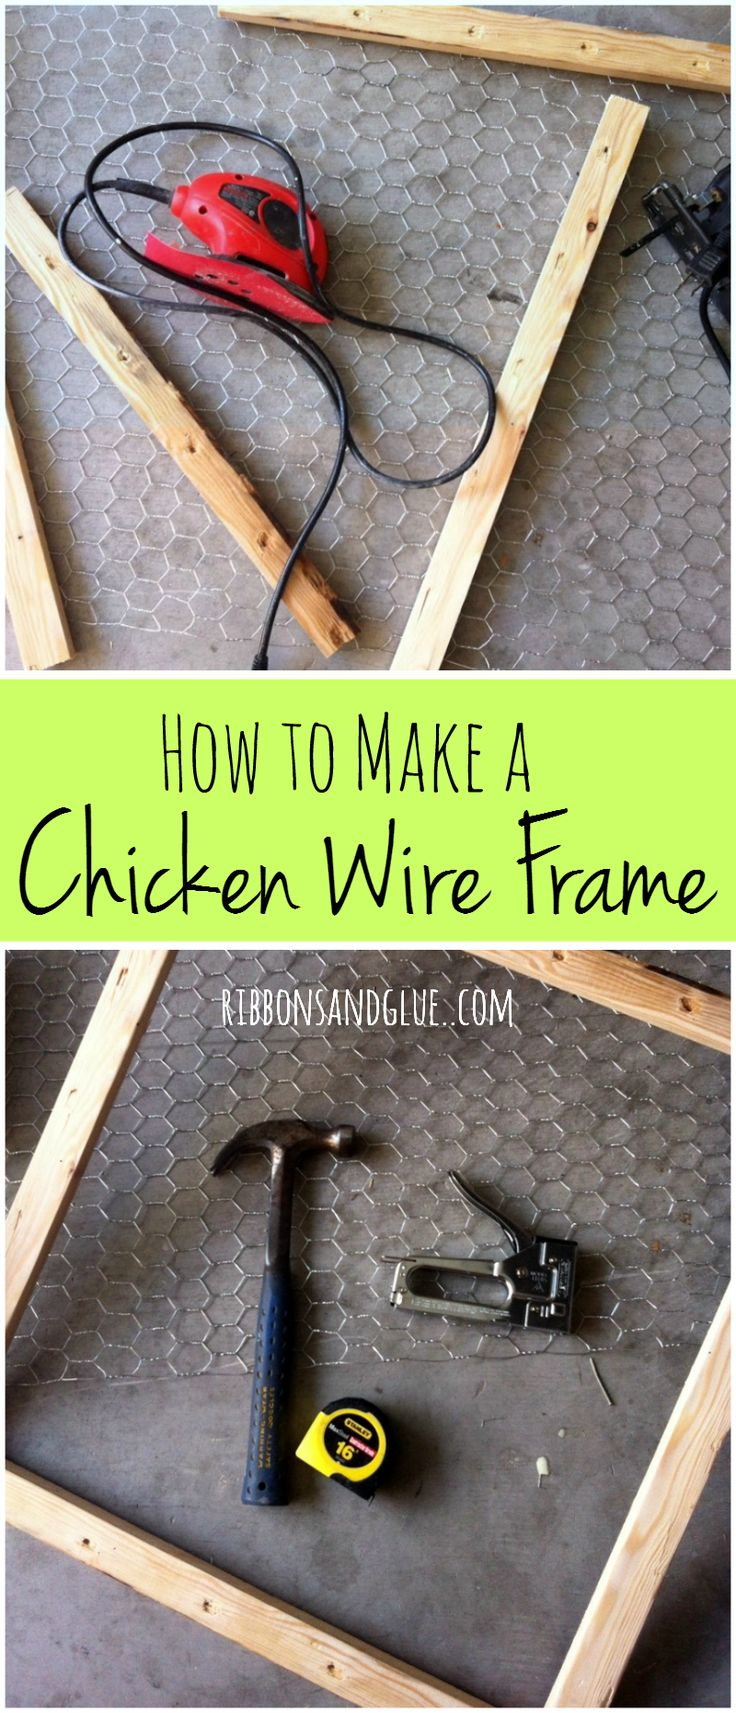 Show off cherished family photos with this: How to make a Chicken Wire Frame http://www.ribbonsandglue.com/diy-chicken-wire-photo-frame.html #DIY #craft #decor